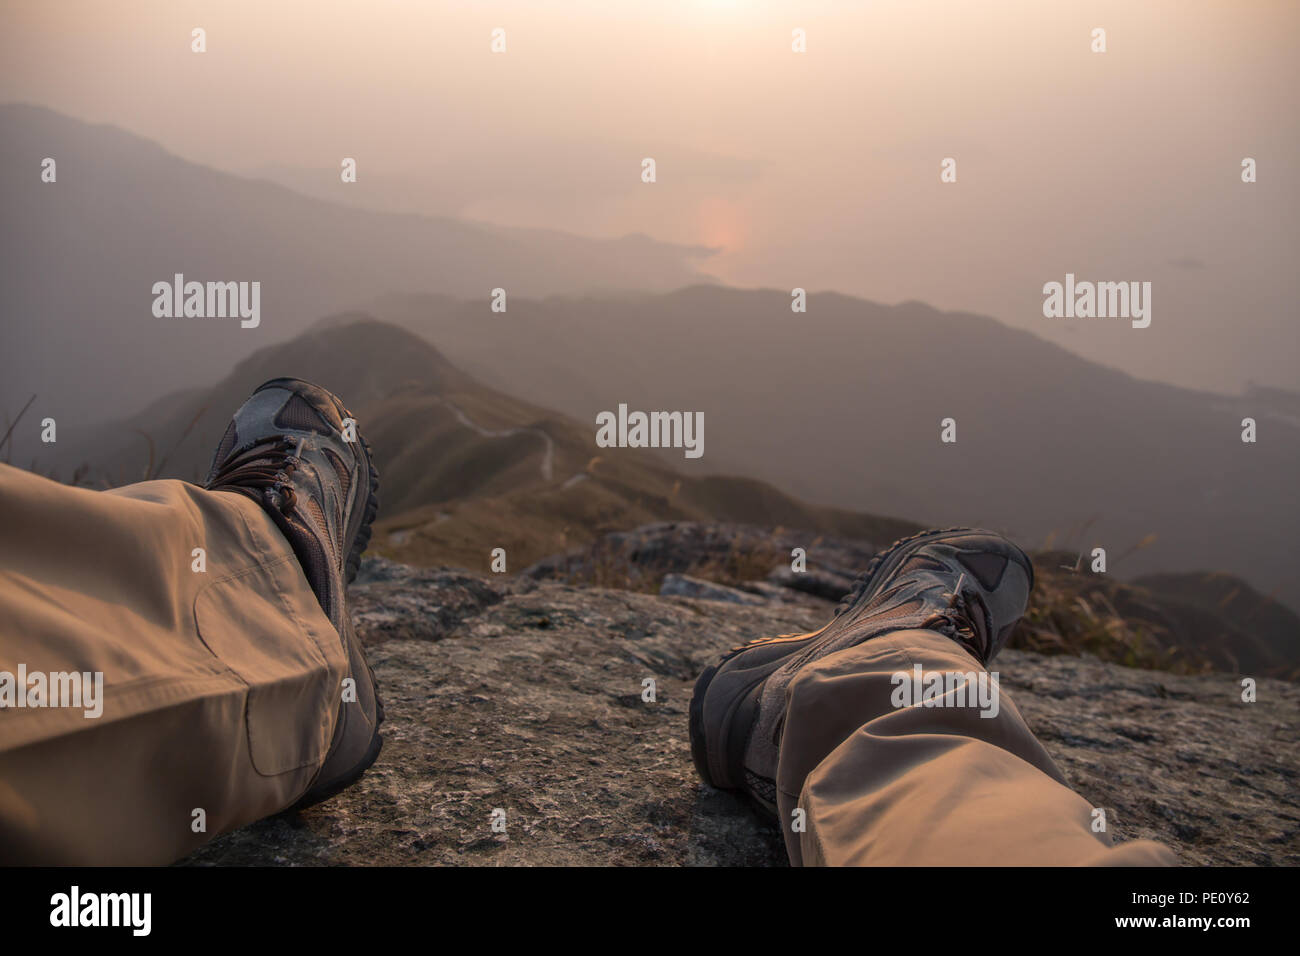 feet and leg of hiker sit on peak with hiking trail and mountain range background with fog at sunrise in winter, Lantau Peak, Hong Kong - Stock Image